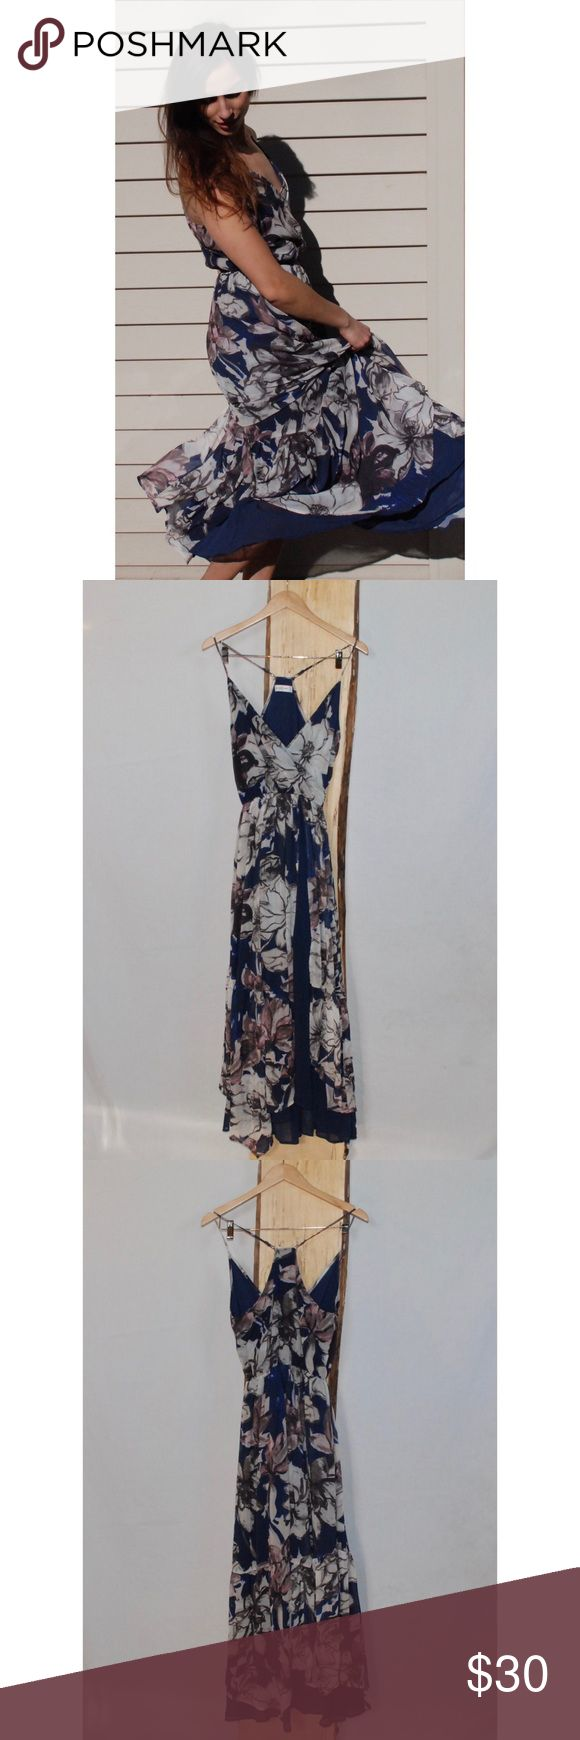 Abercrombie and Fitch Layered Floral Maxi Dress - Abercrombie and Fitch Layered Floral Maxi Dress   - Floral printed flowing layers with dark blue underlay. Racer back with adjustable straps   - 100% Polyester  - Gently Used Abercrombie & Fitch Dresses Maxi